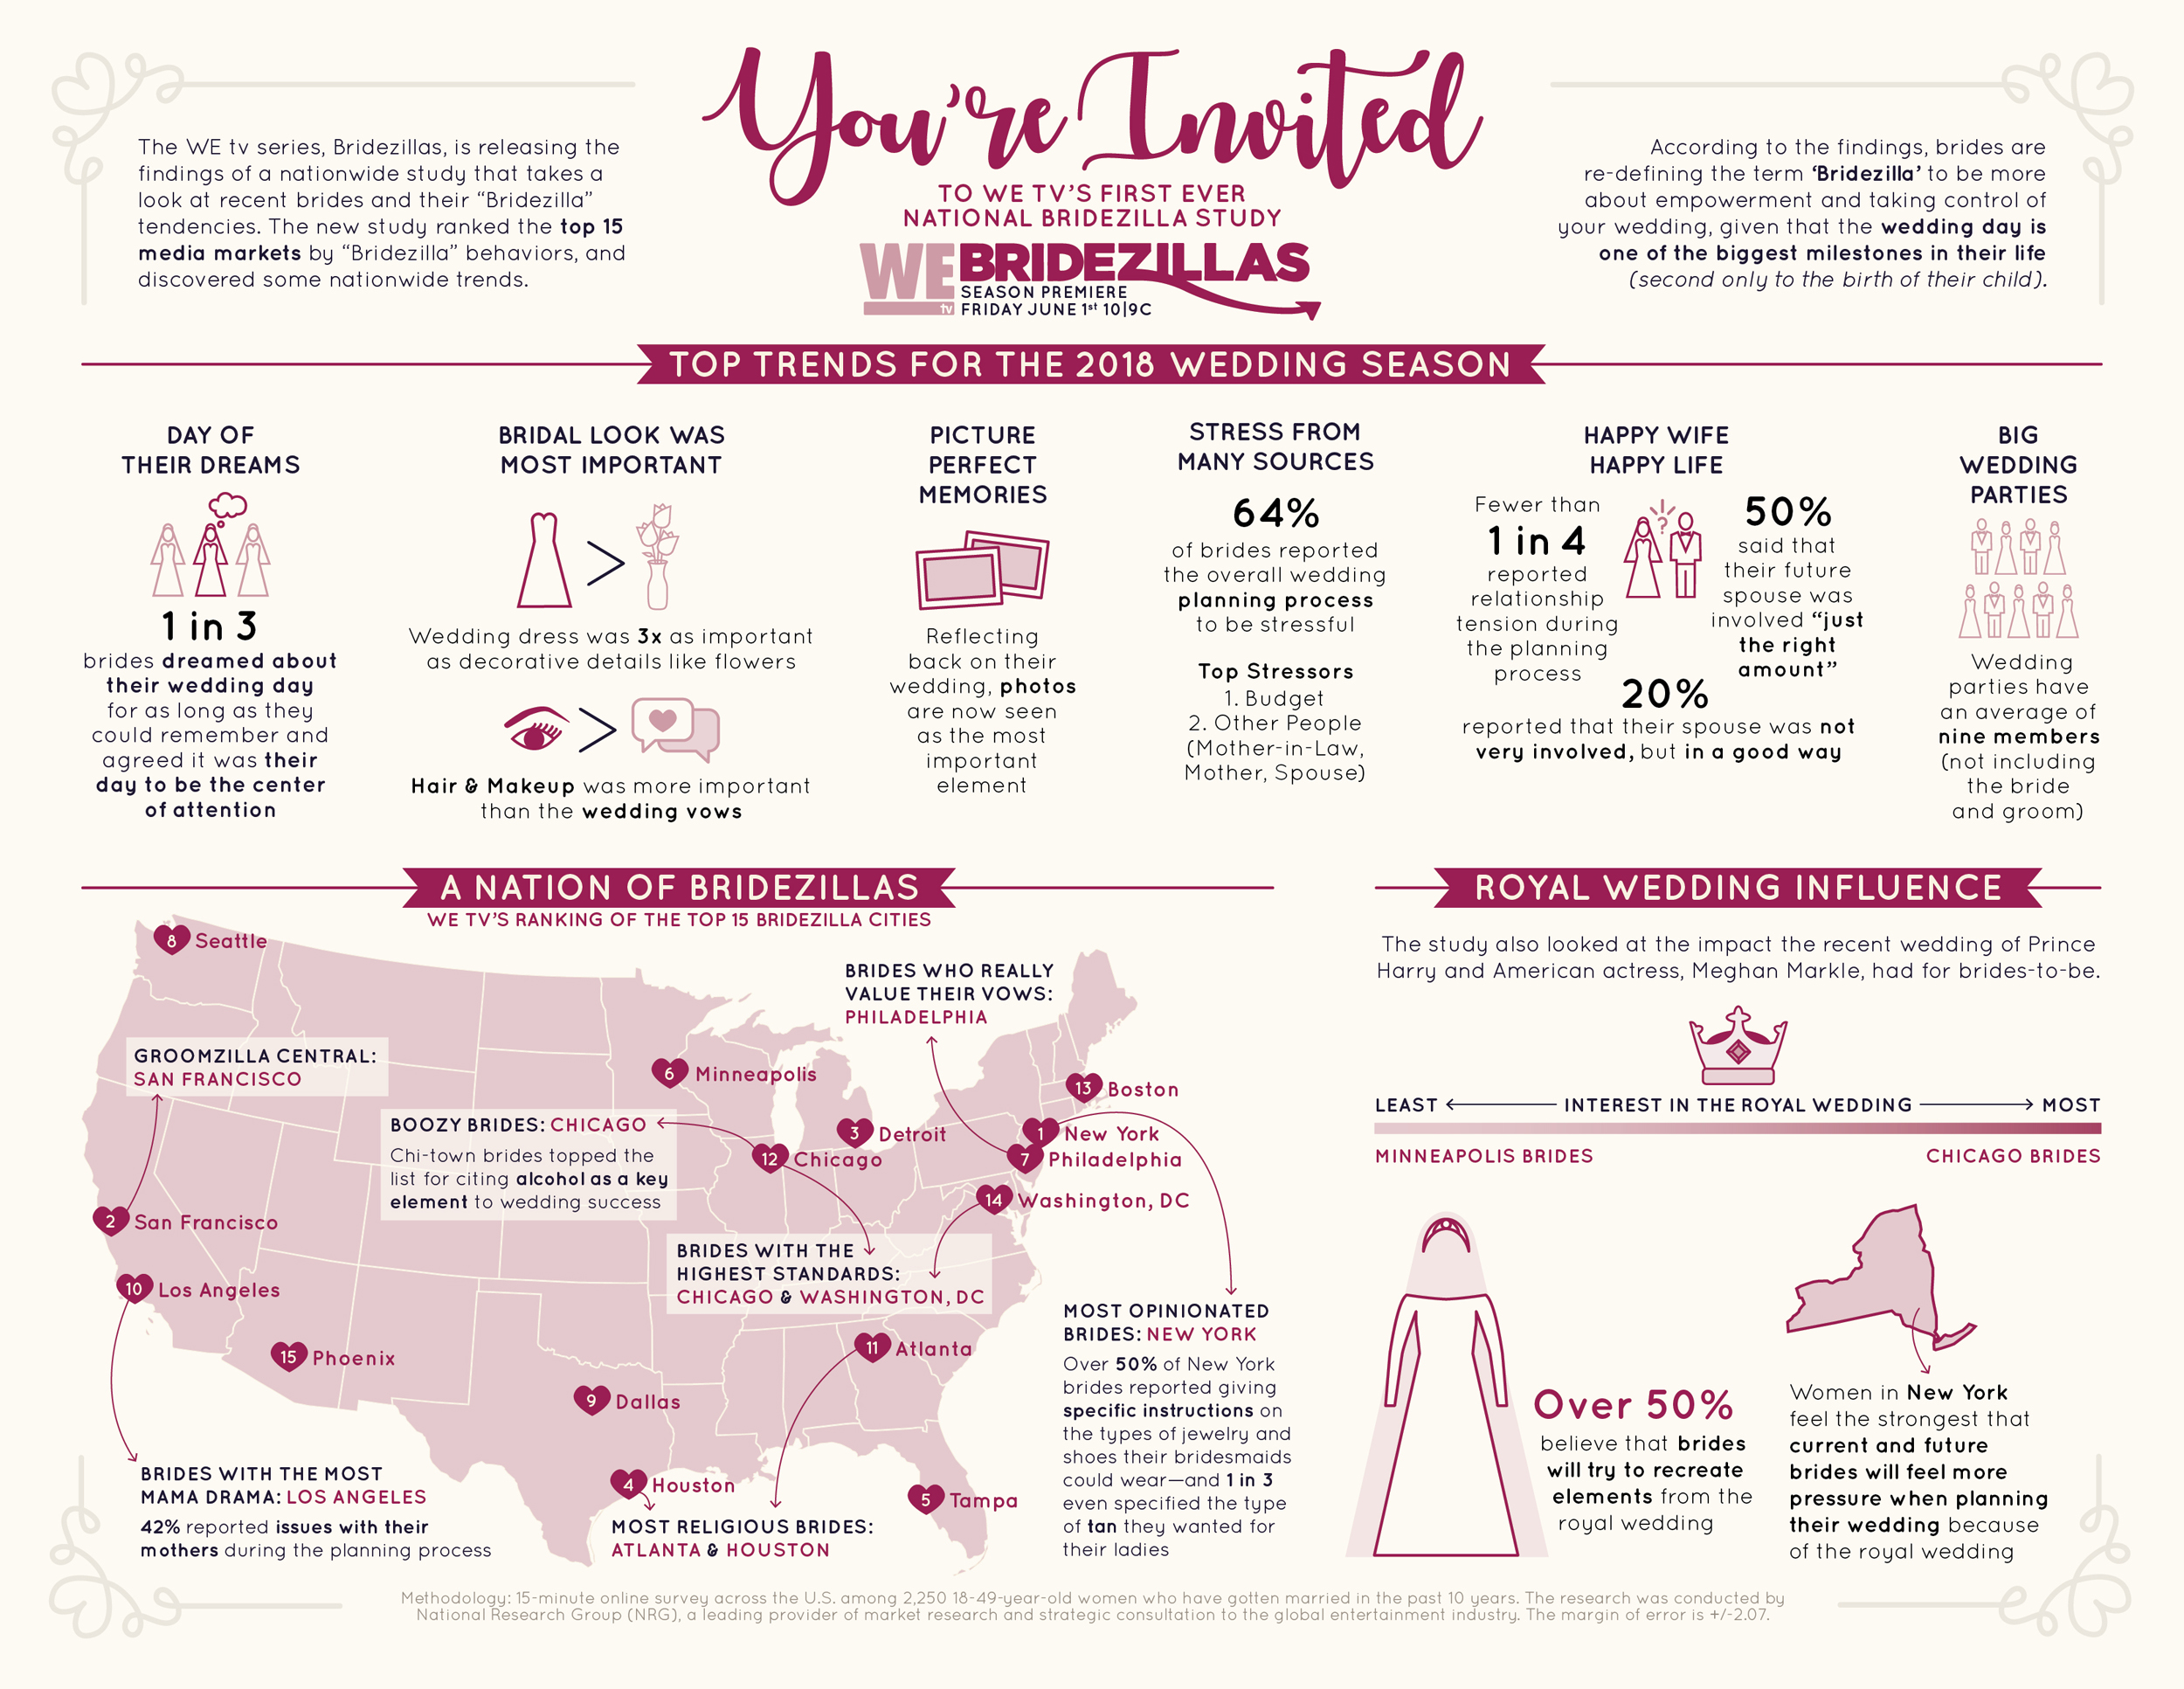 bridezilla survey infographic wedding planning trend in united states